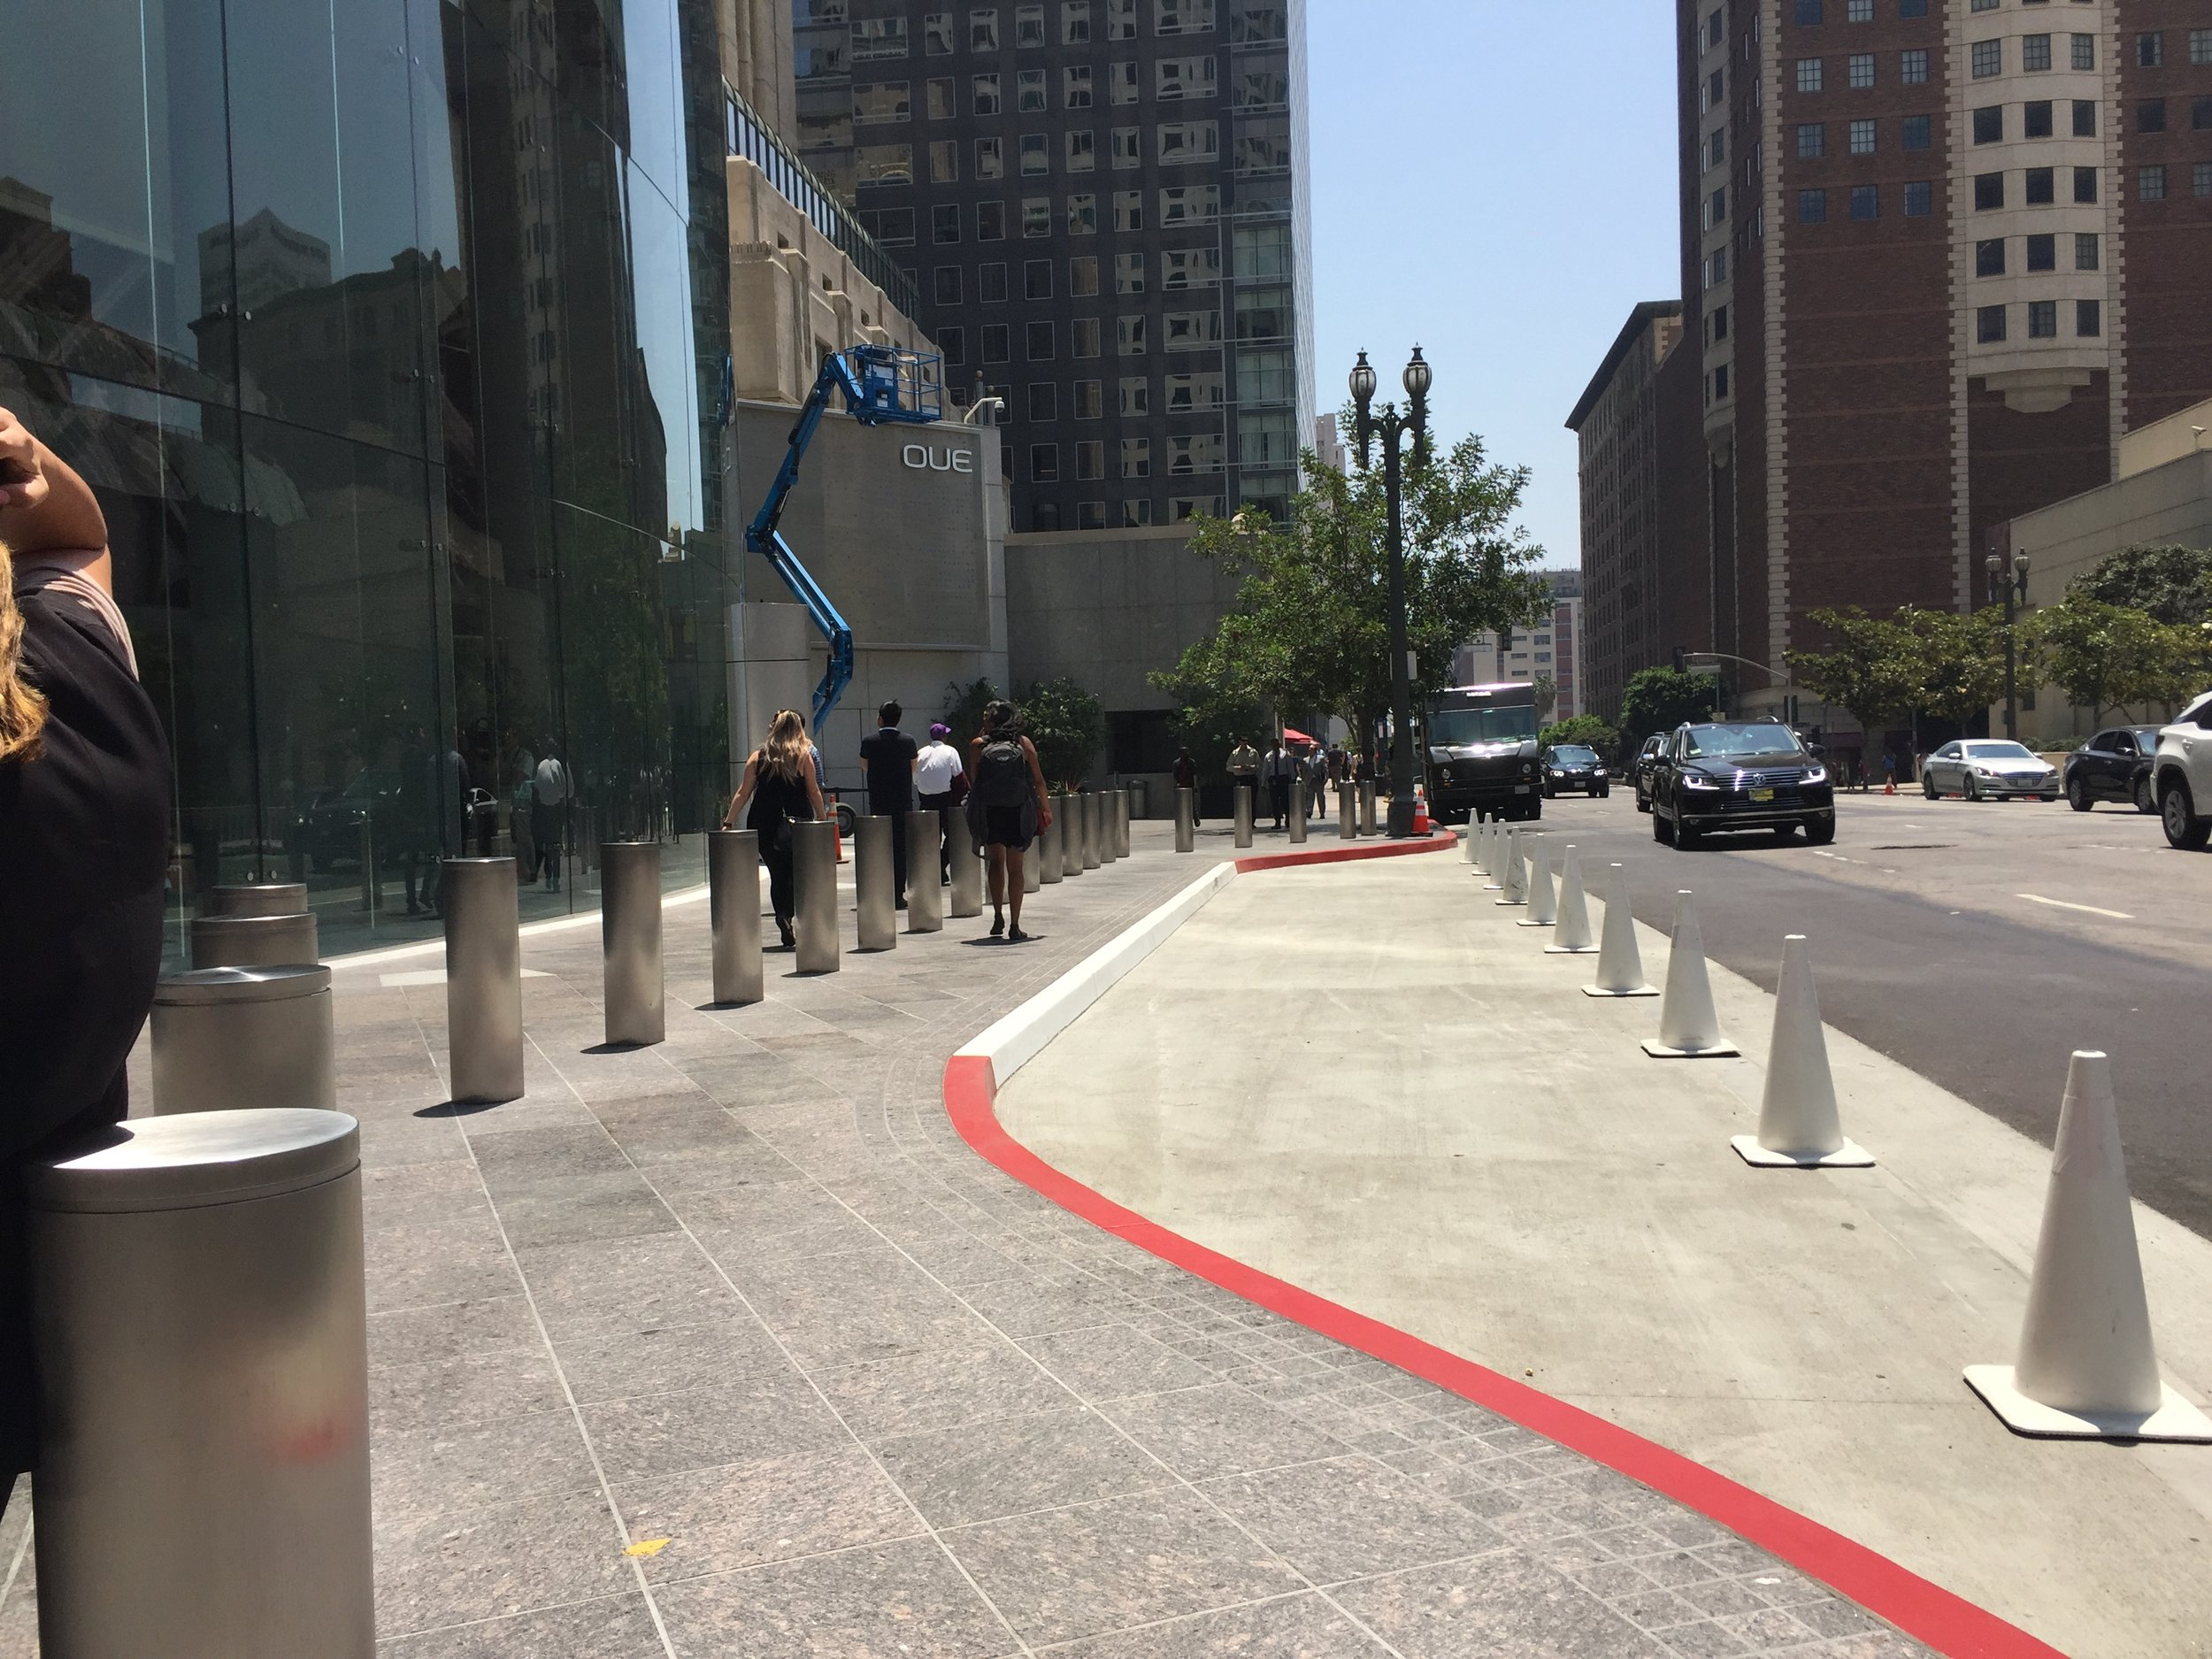 The new car passenger loading lane that took an enormous chunk out of the sidewalk in front of the U.S. Bank Tower in downtown Los Angeles, July 2016.